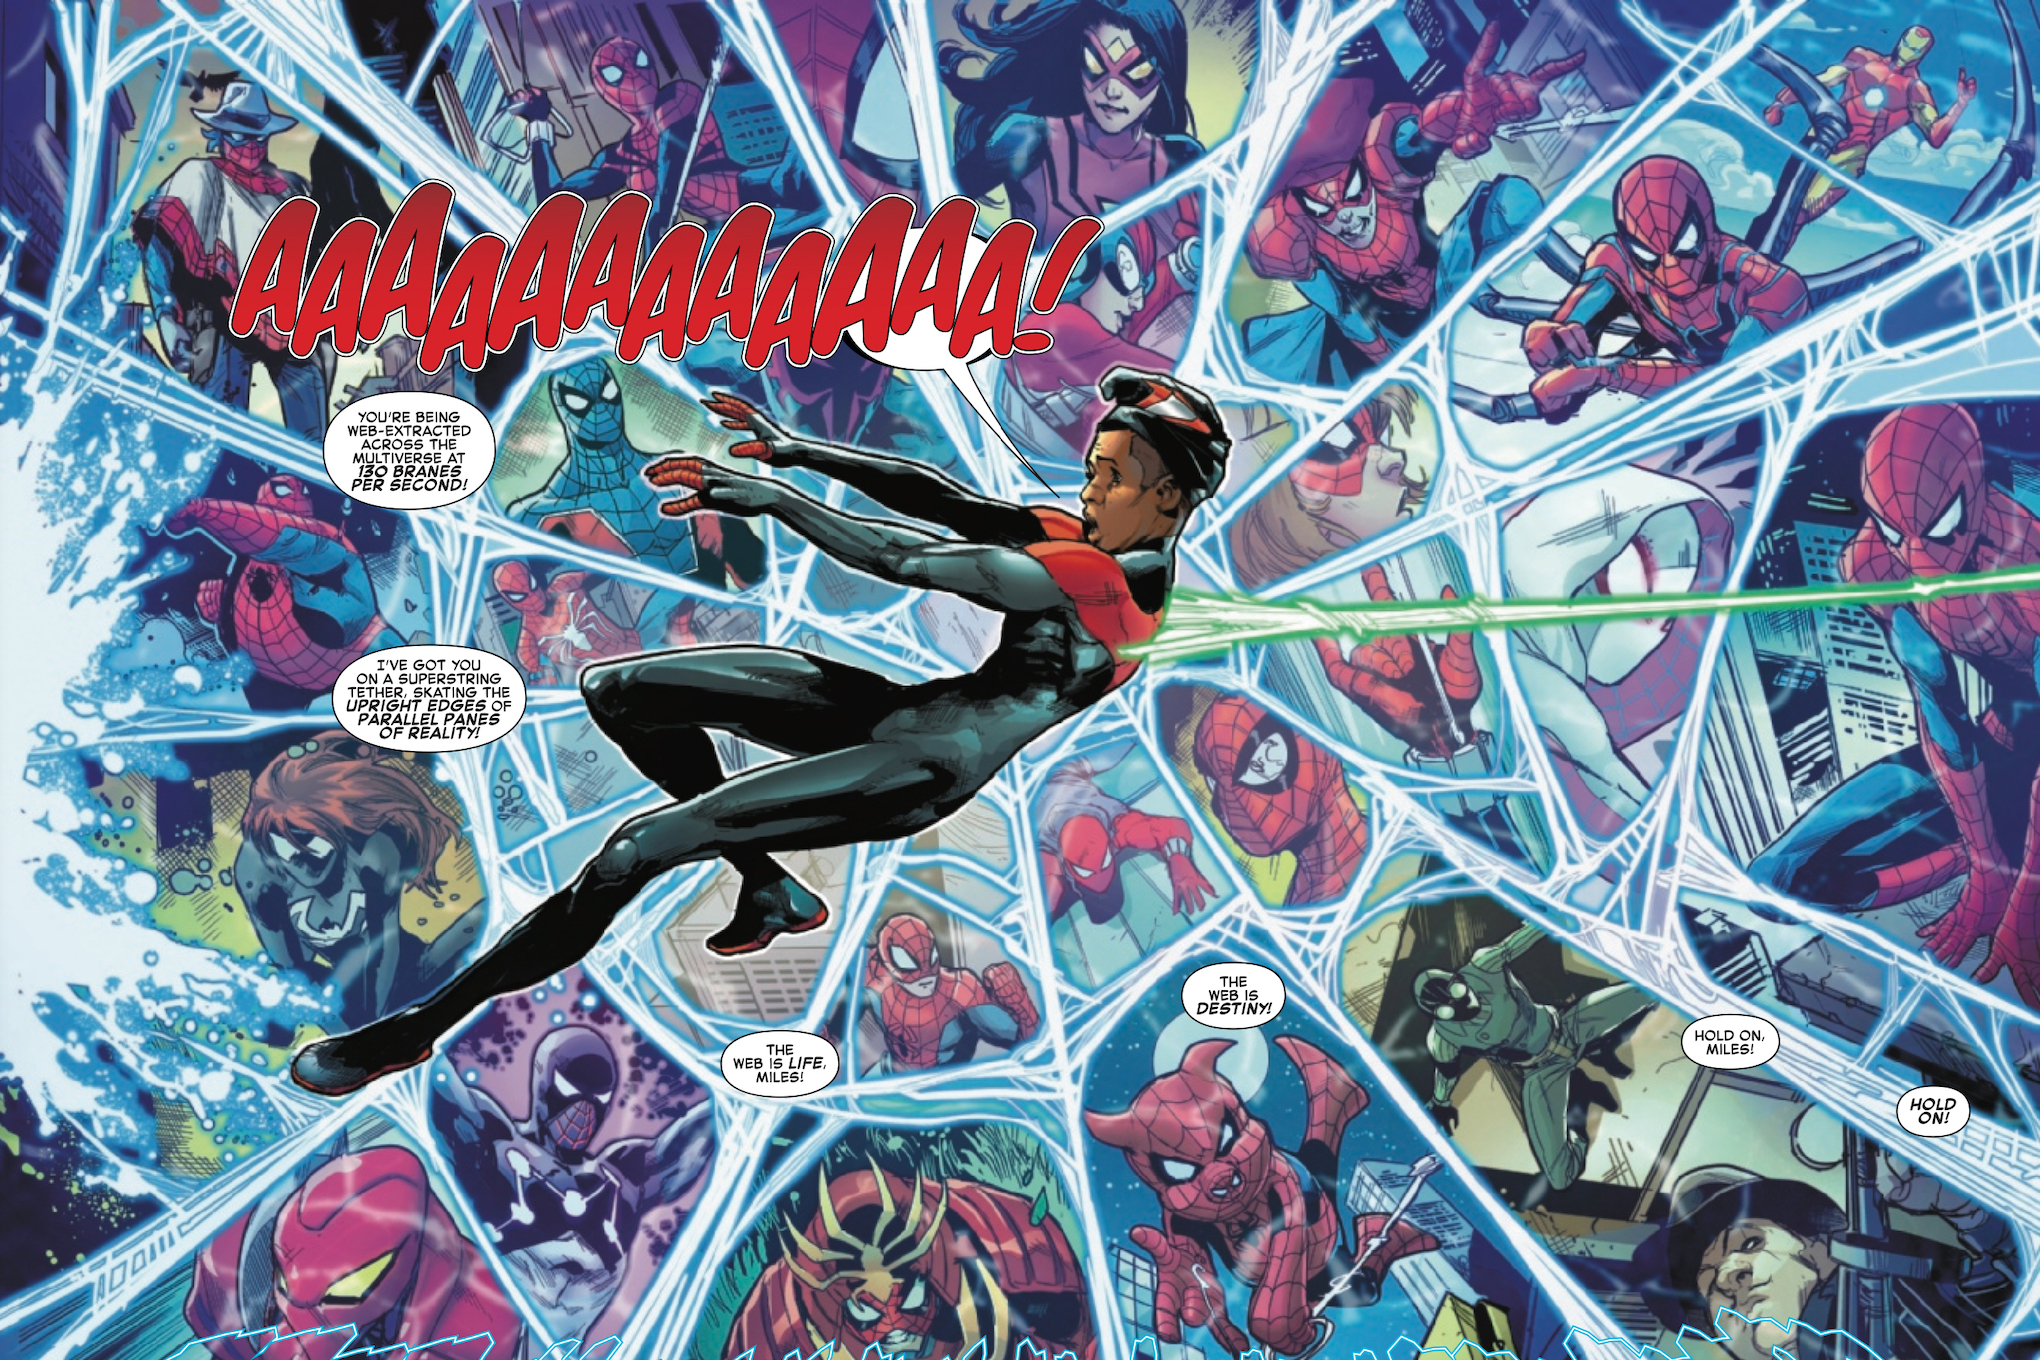 Miles Morales is pulled across dimensions in Spider-Verse #1, Marvel Comics (2019).